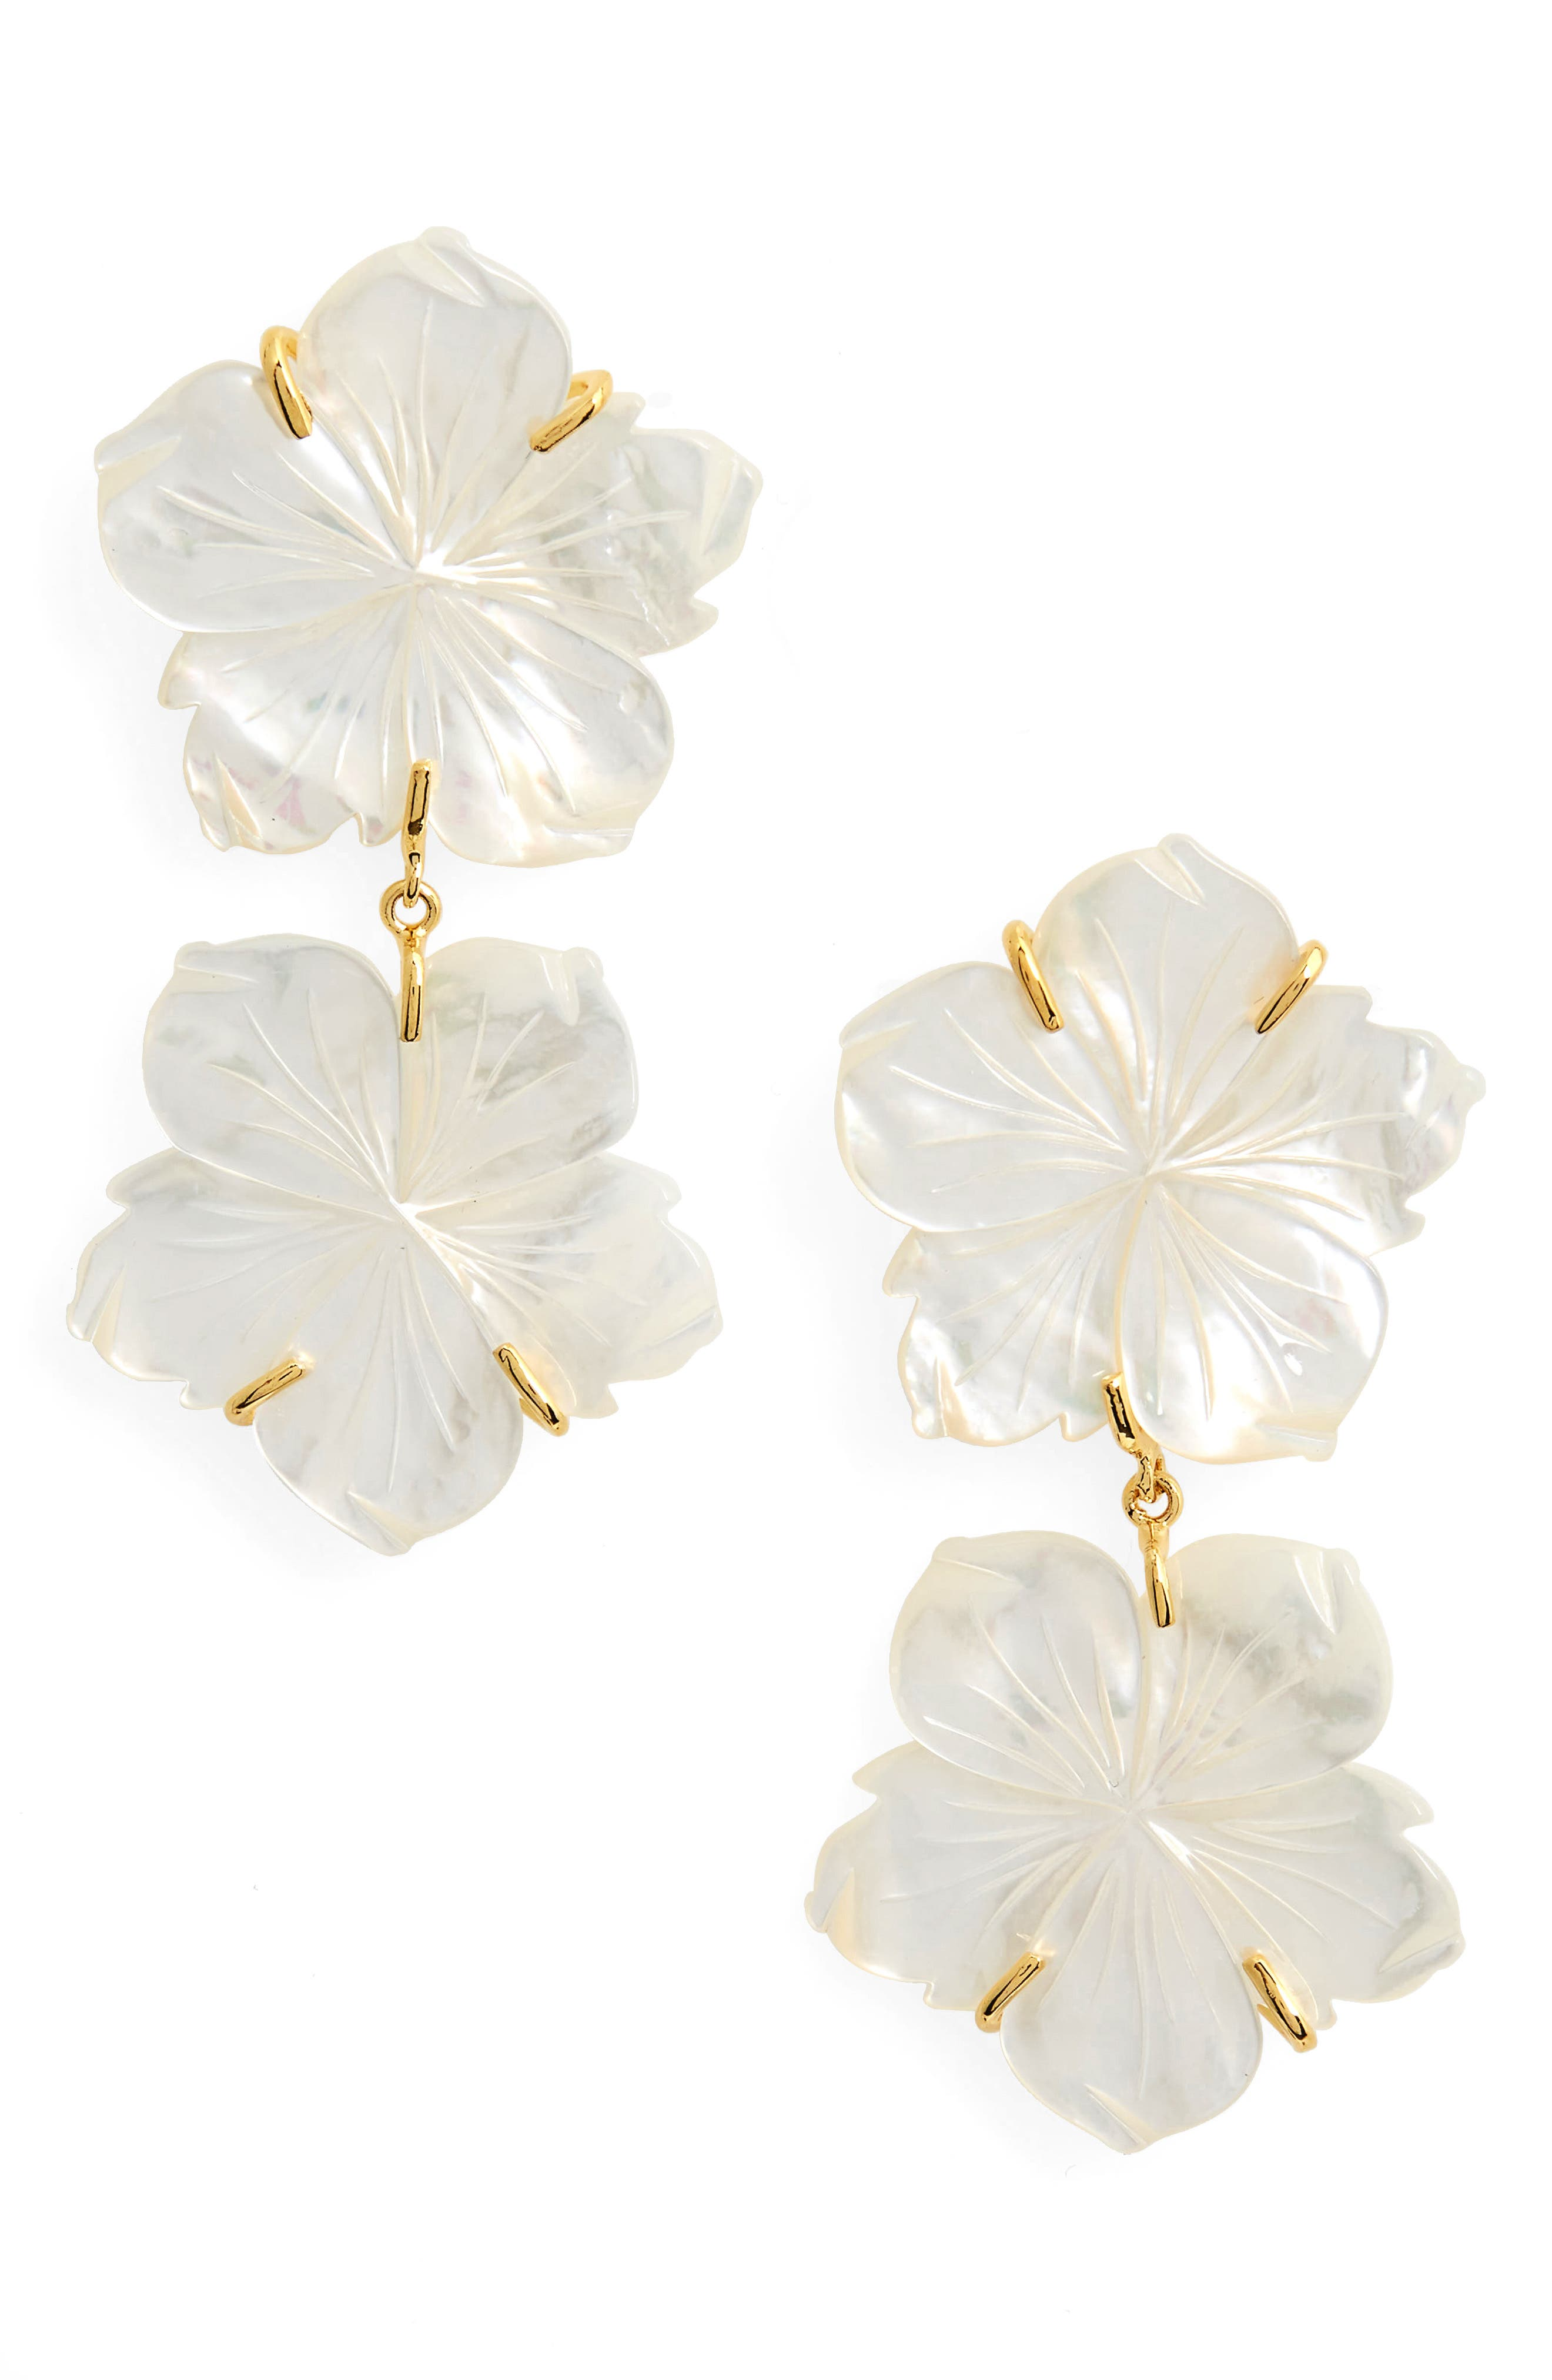 Paperwhite Drop Earrings,                             Main thumbnail 1, color,                             900